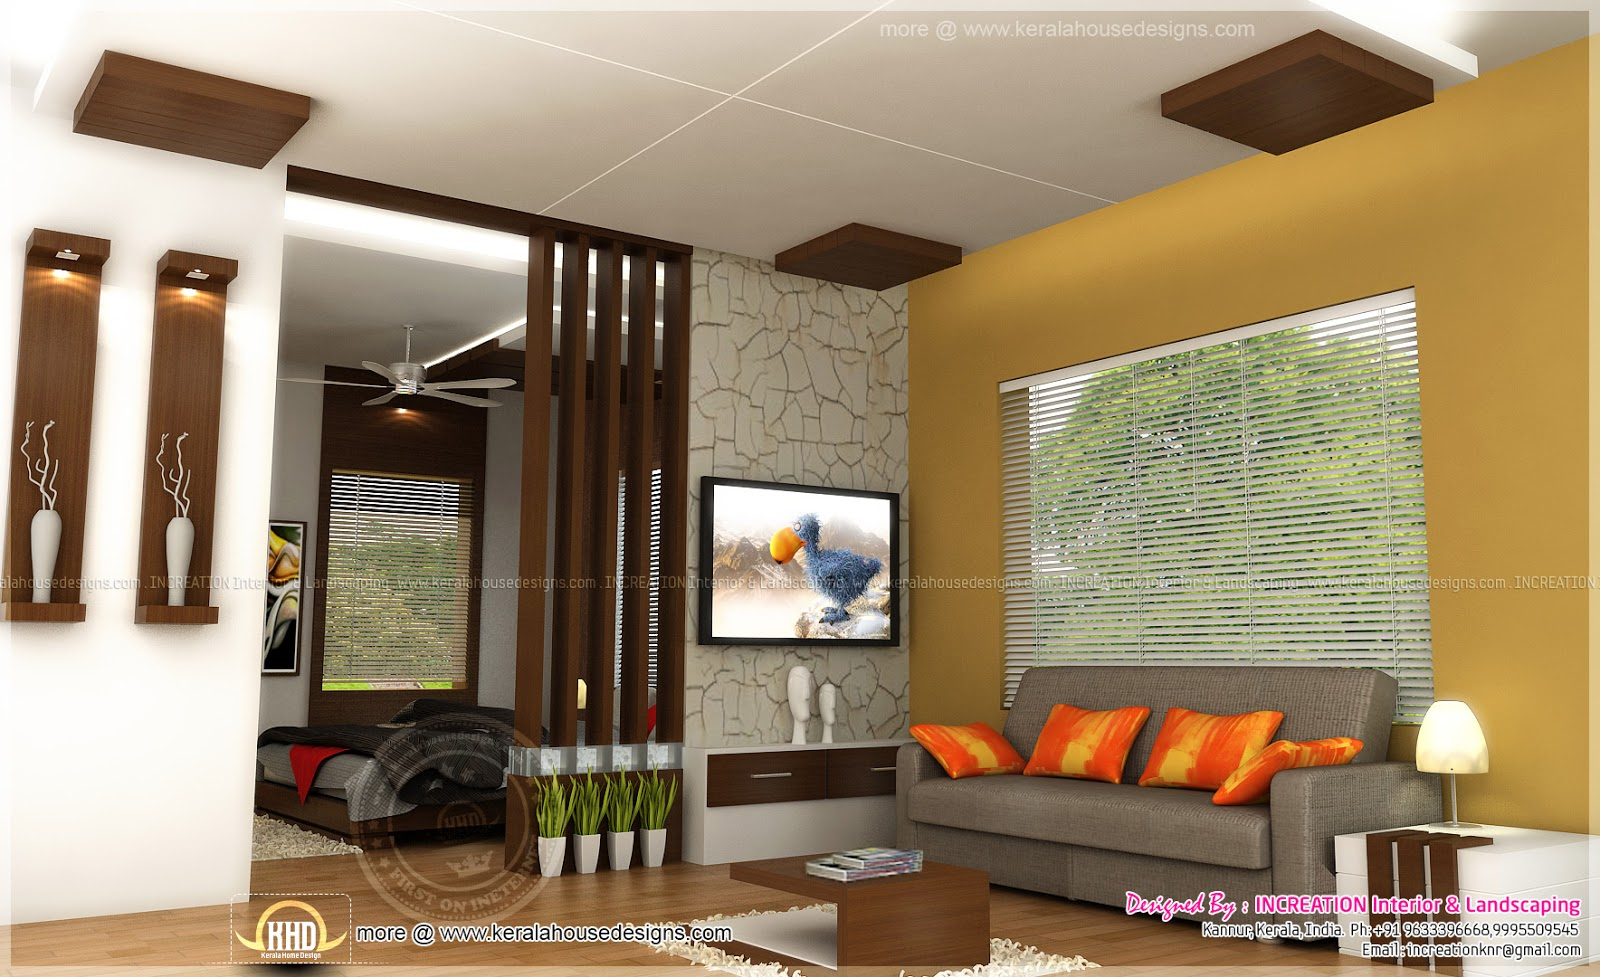 Interior designs from kannur kerala home kerala plans for Drawing room interior ideas